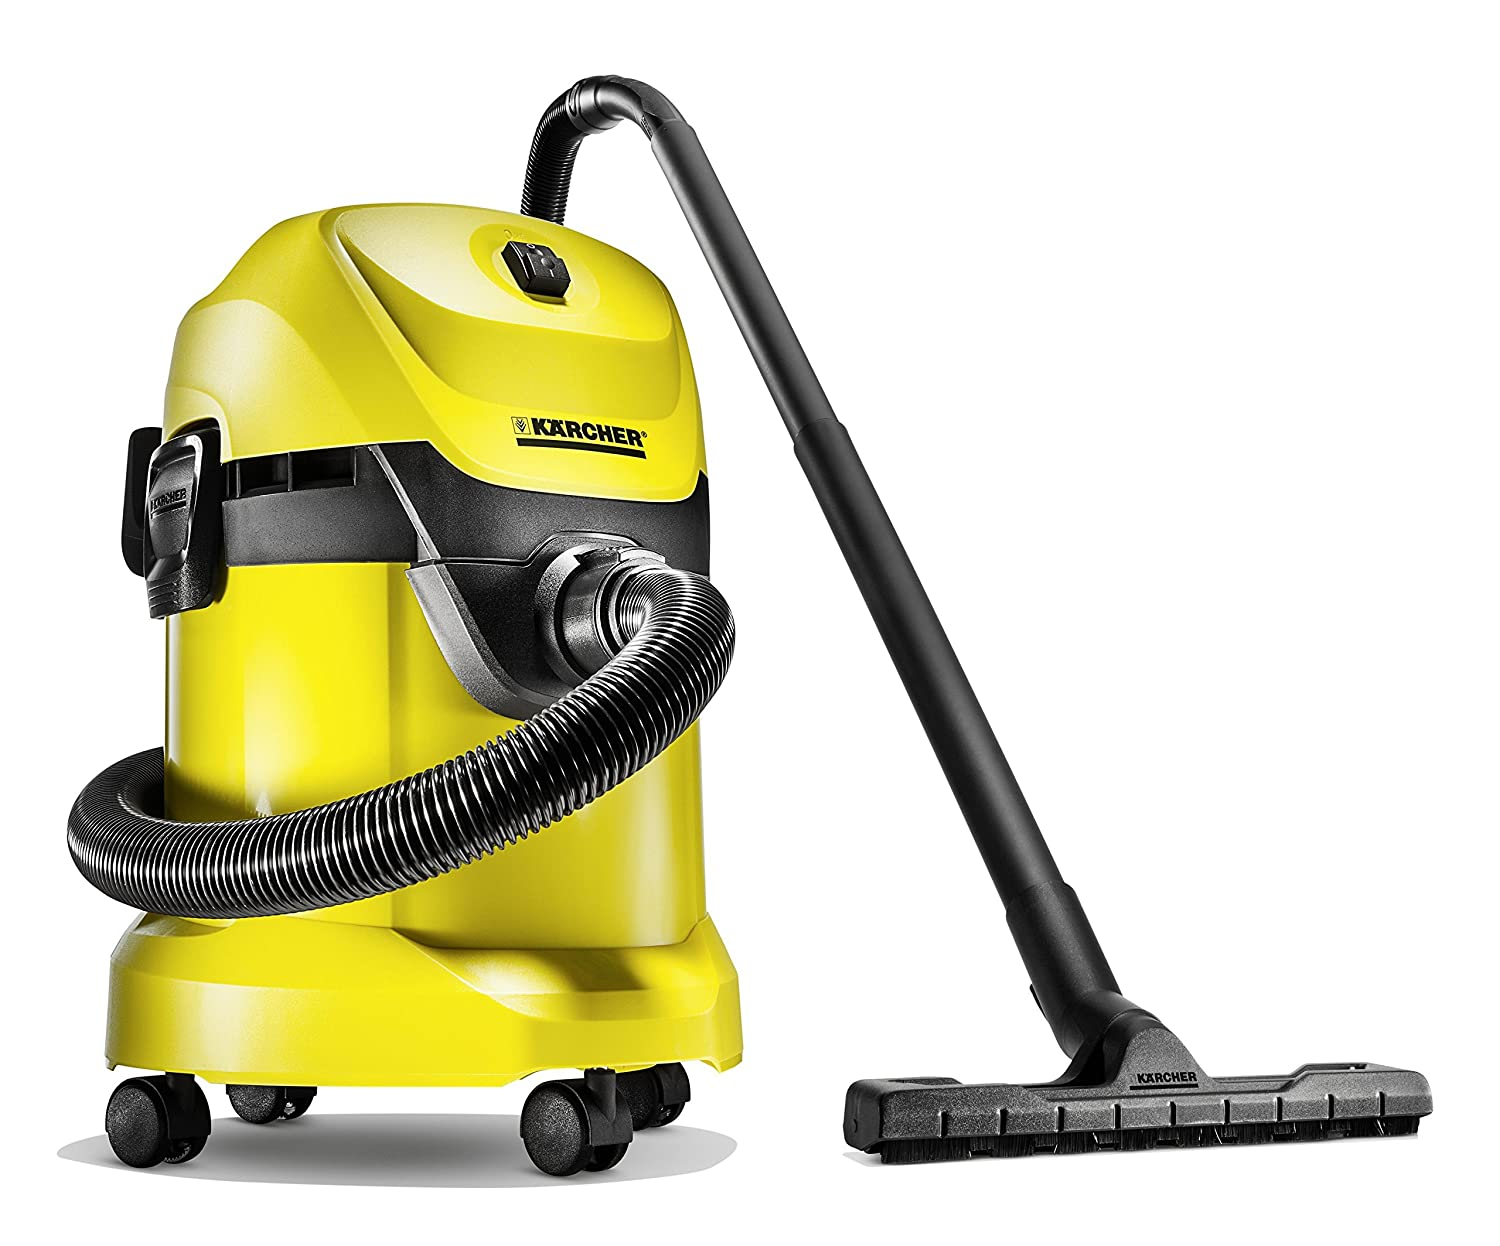 karcher-vacuum-cleaner-india-pic